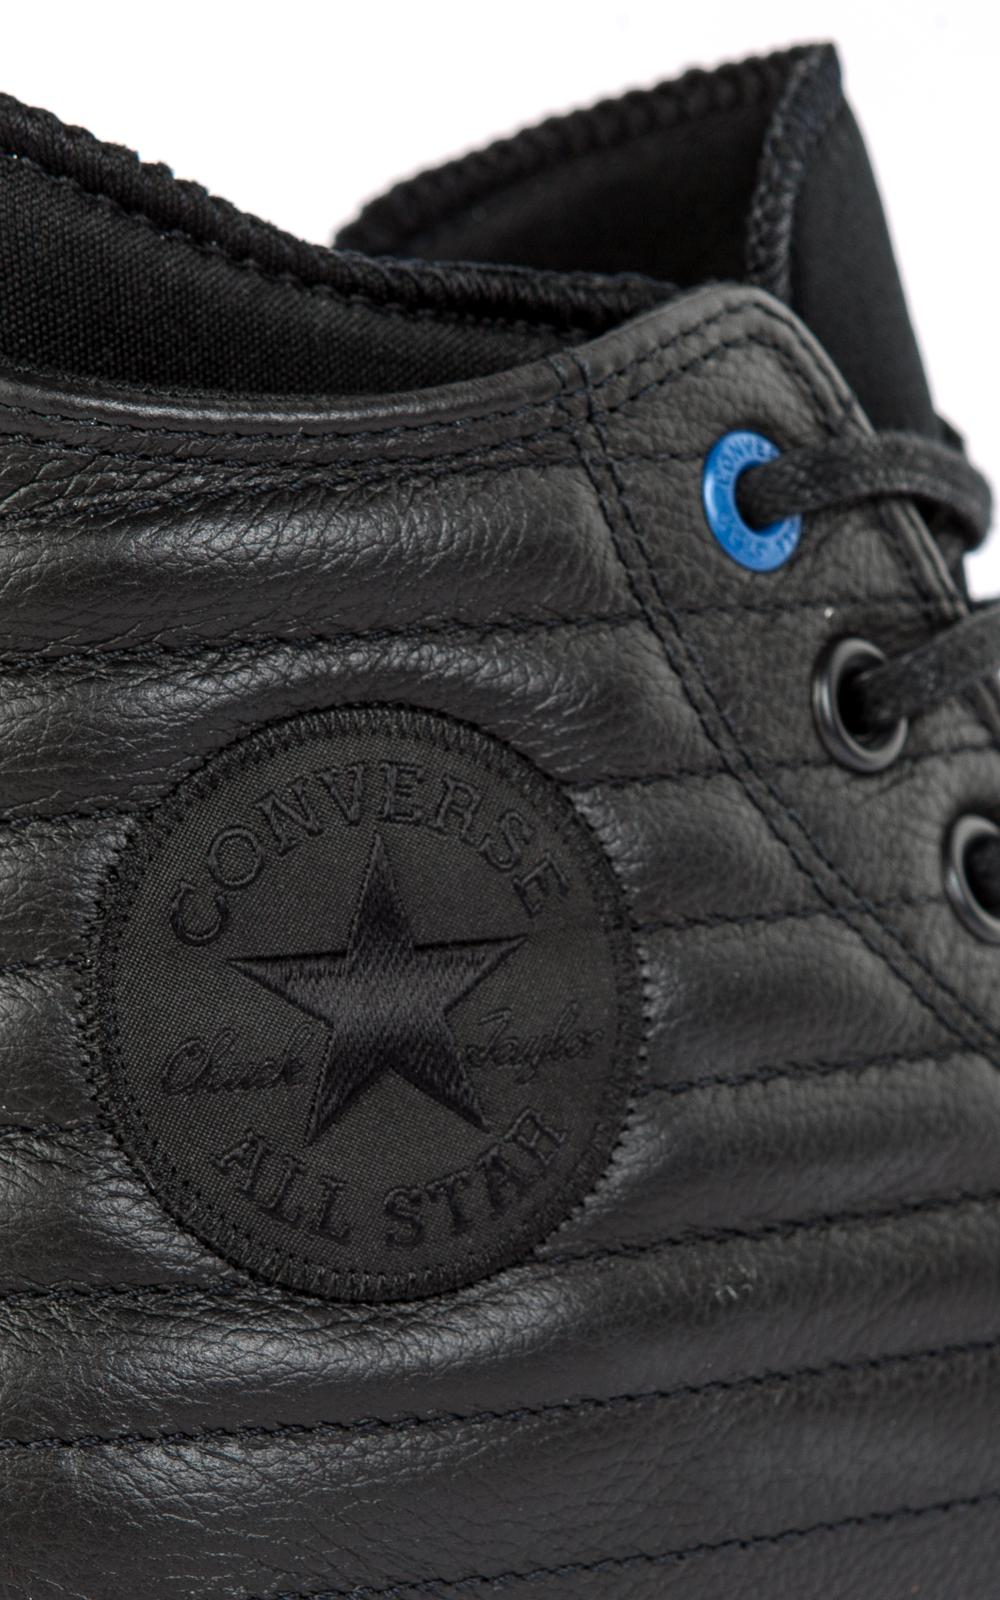 ff4793bf38d2ab Converse All Star Chuck Waterproof Boot Quilted Leather Black in ...